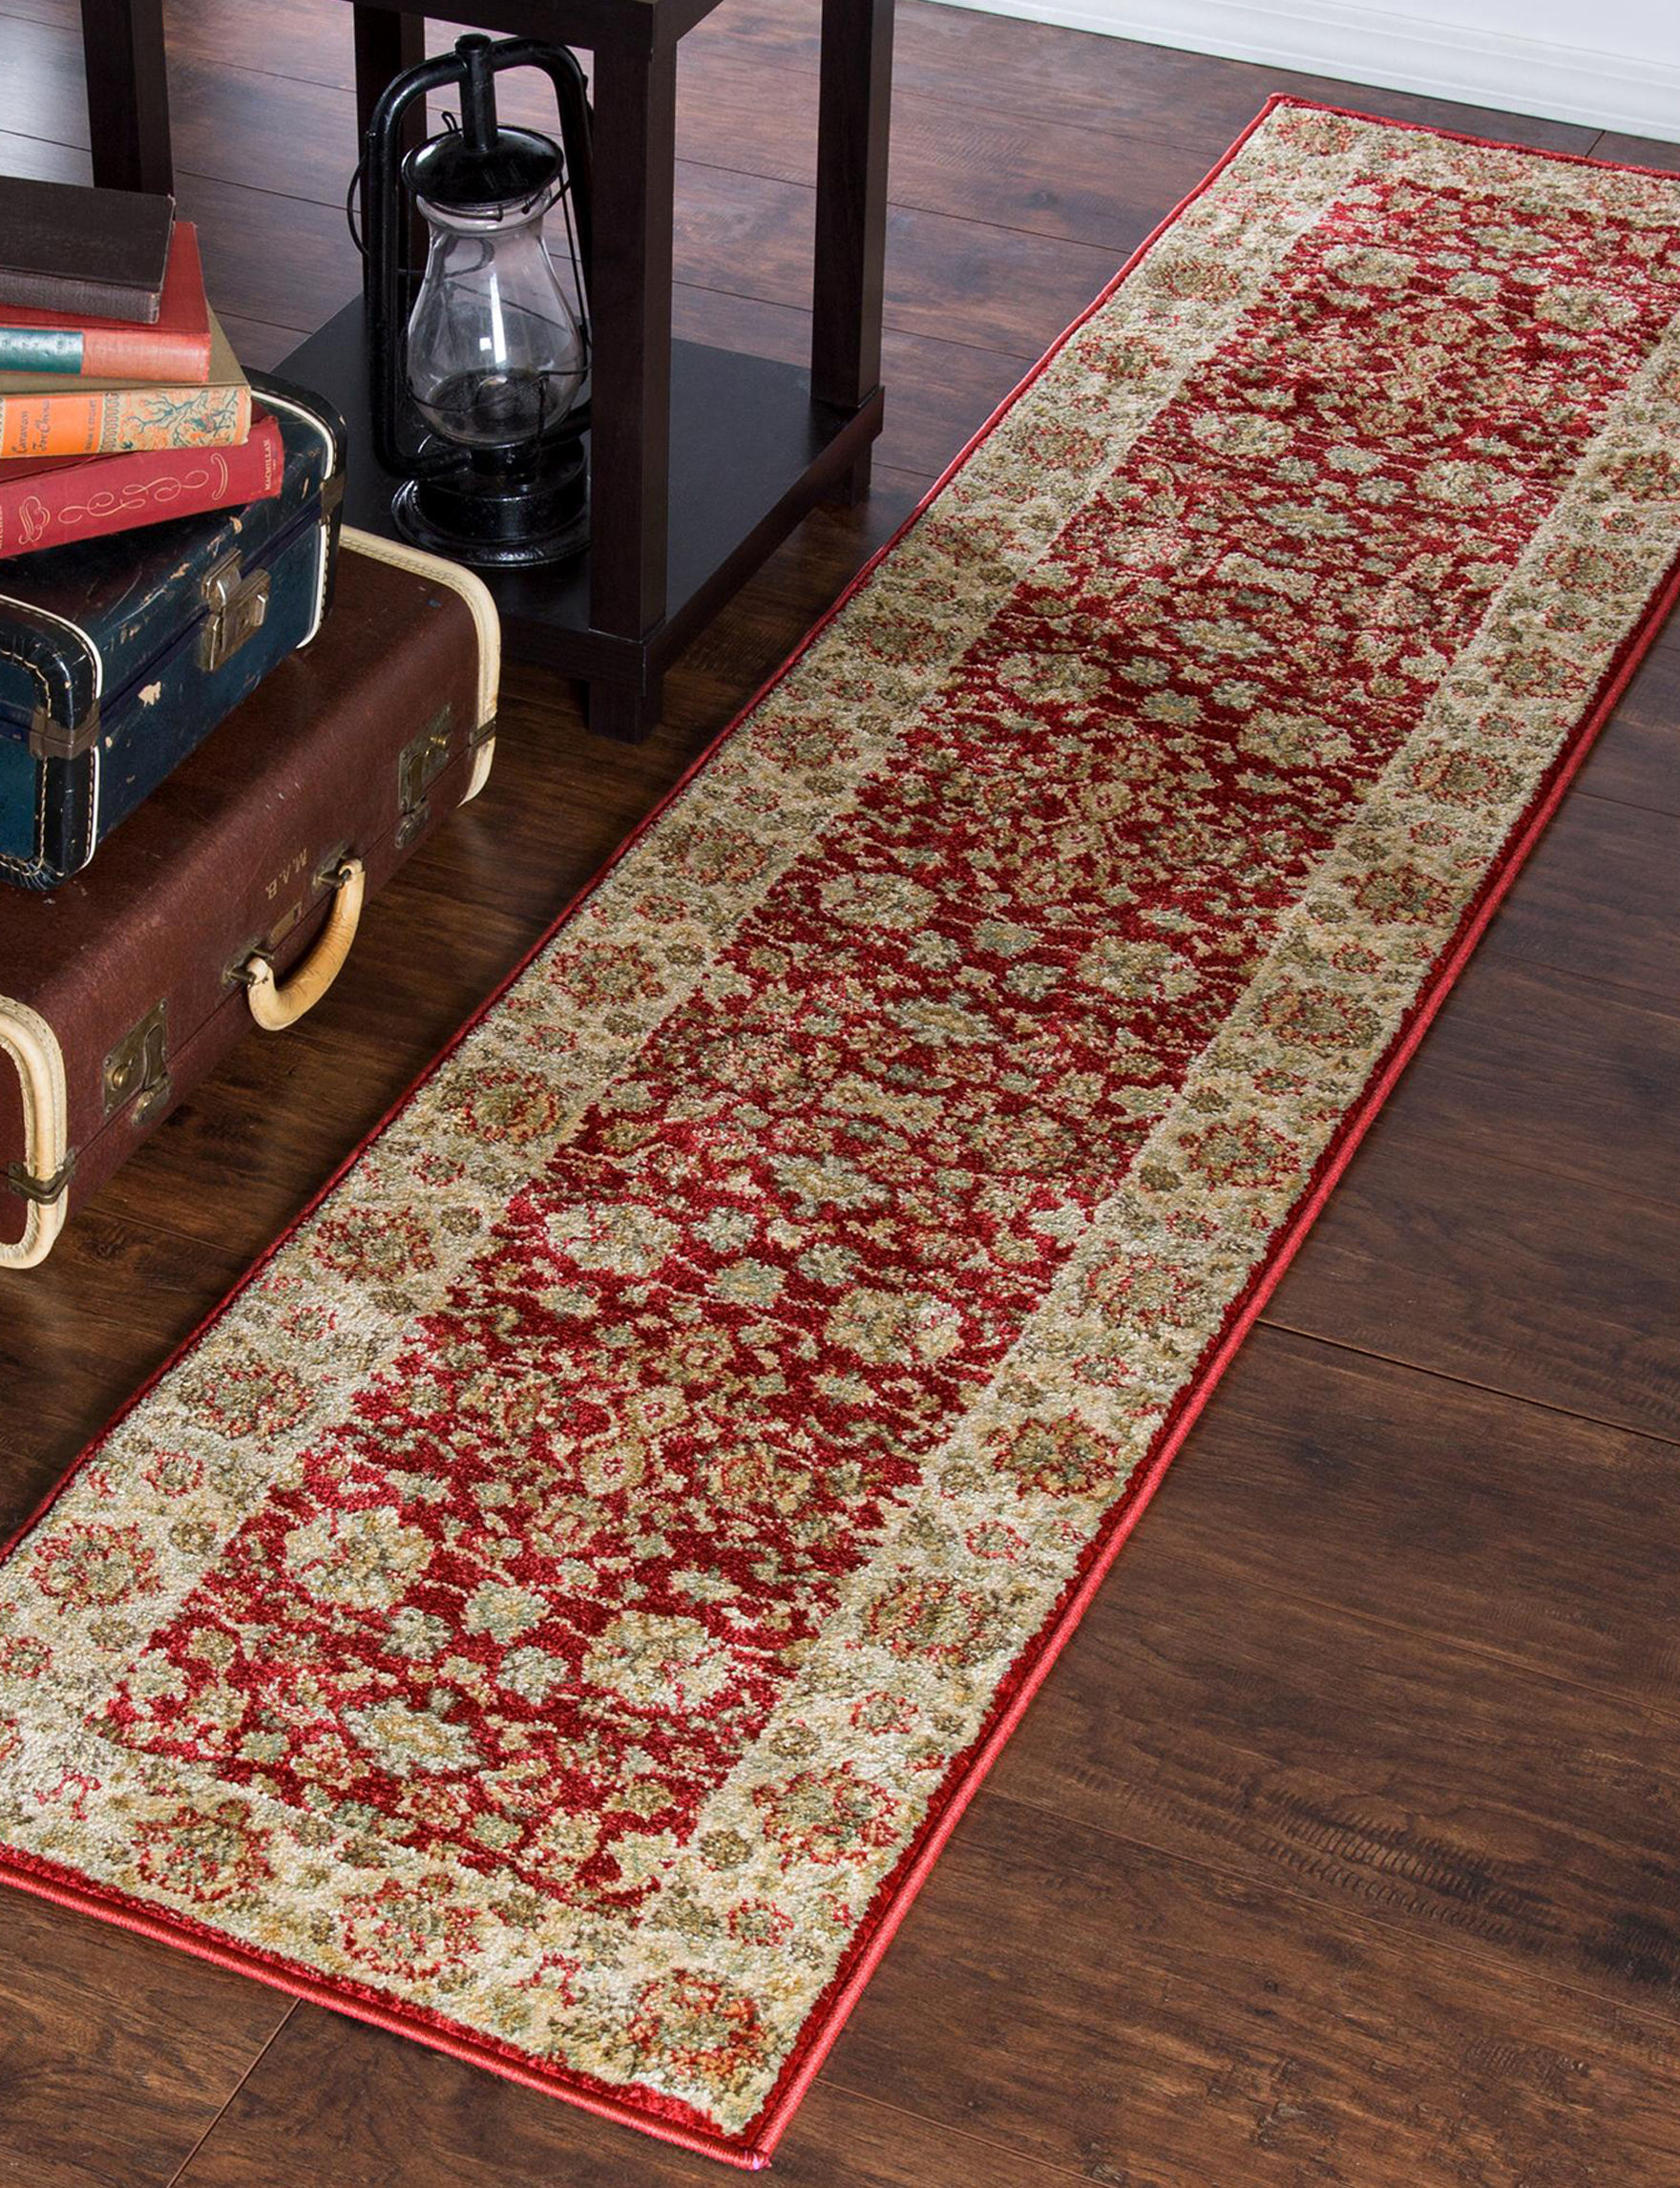 Lavish Home Red Area Rugs Runners Rugs